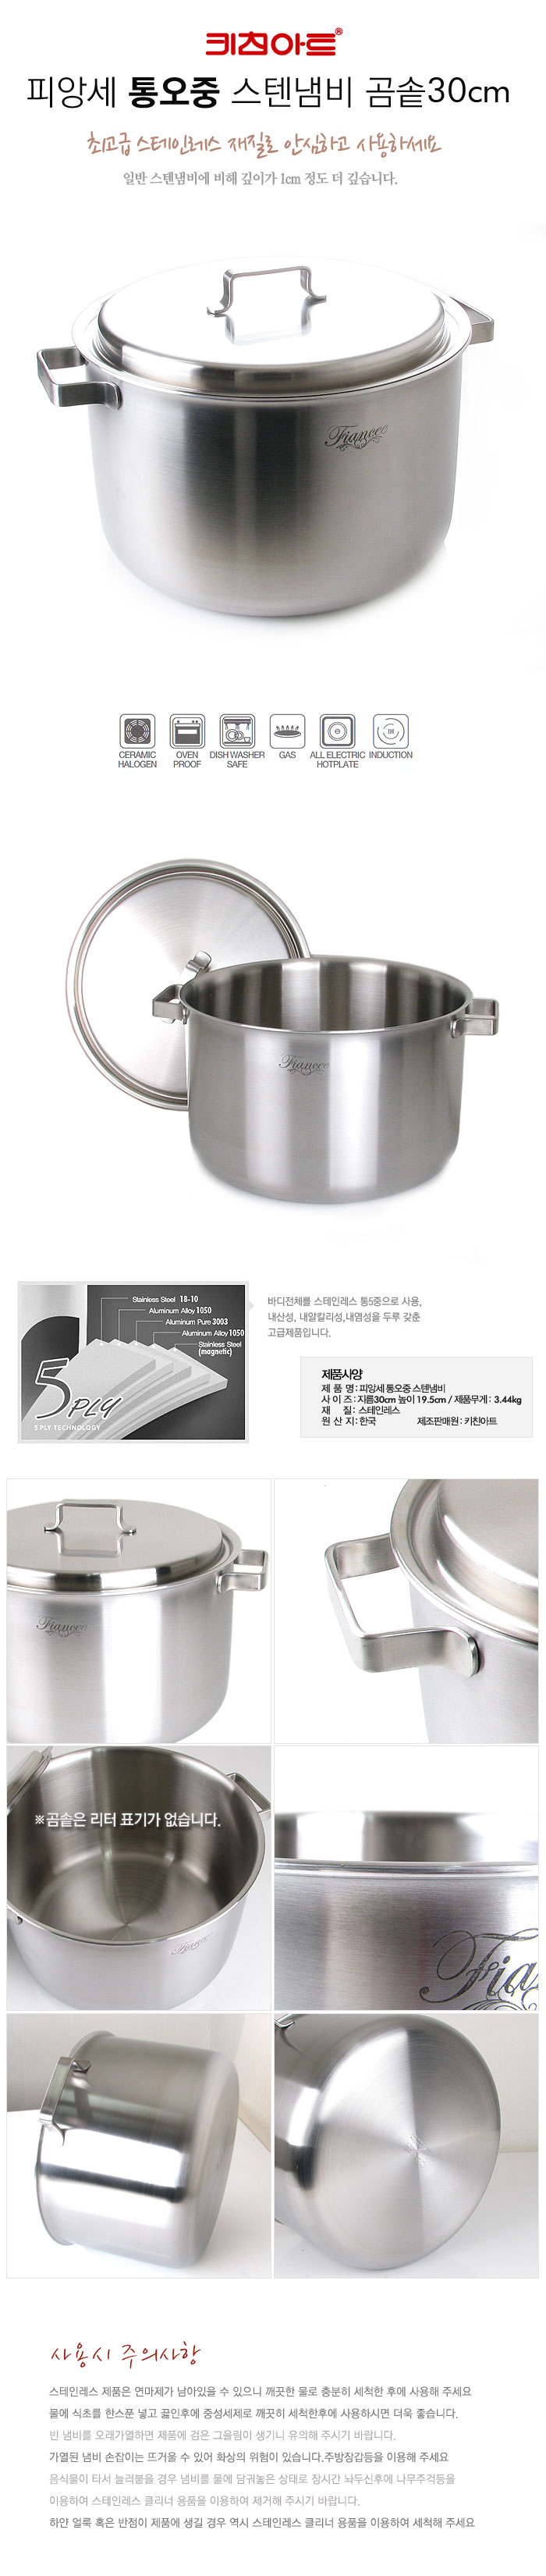 [ KITCHENART ] Fiance 5Ply Stainless Pot Stew Pot 30Cm